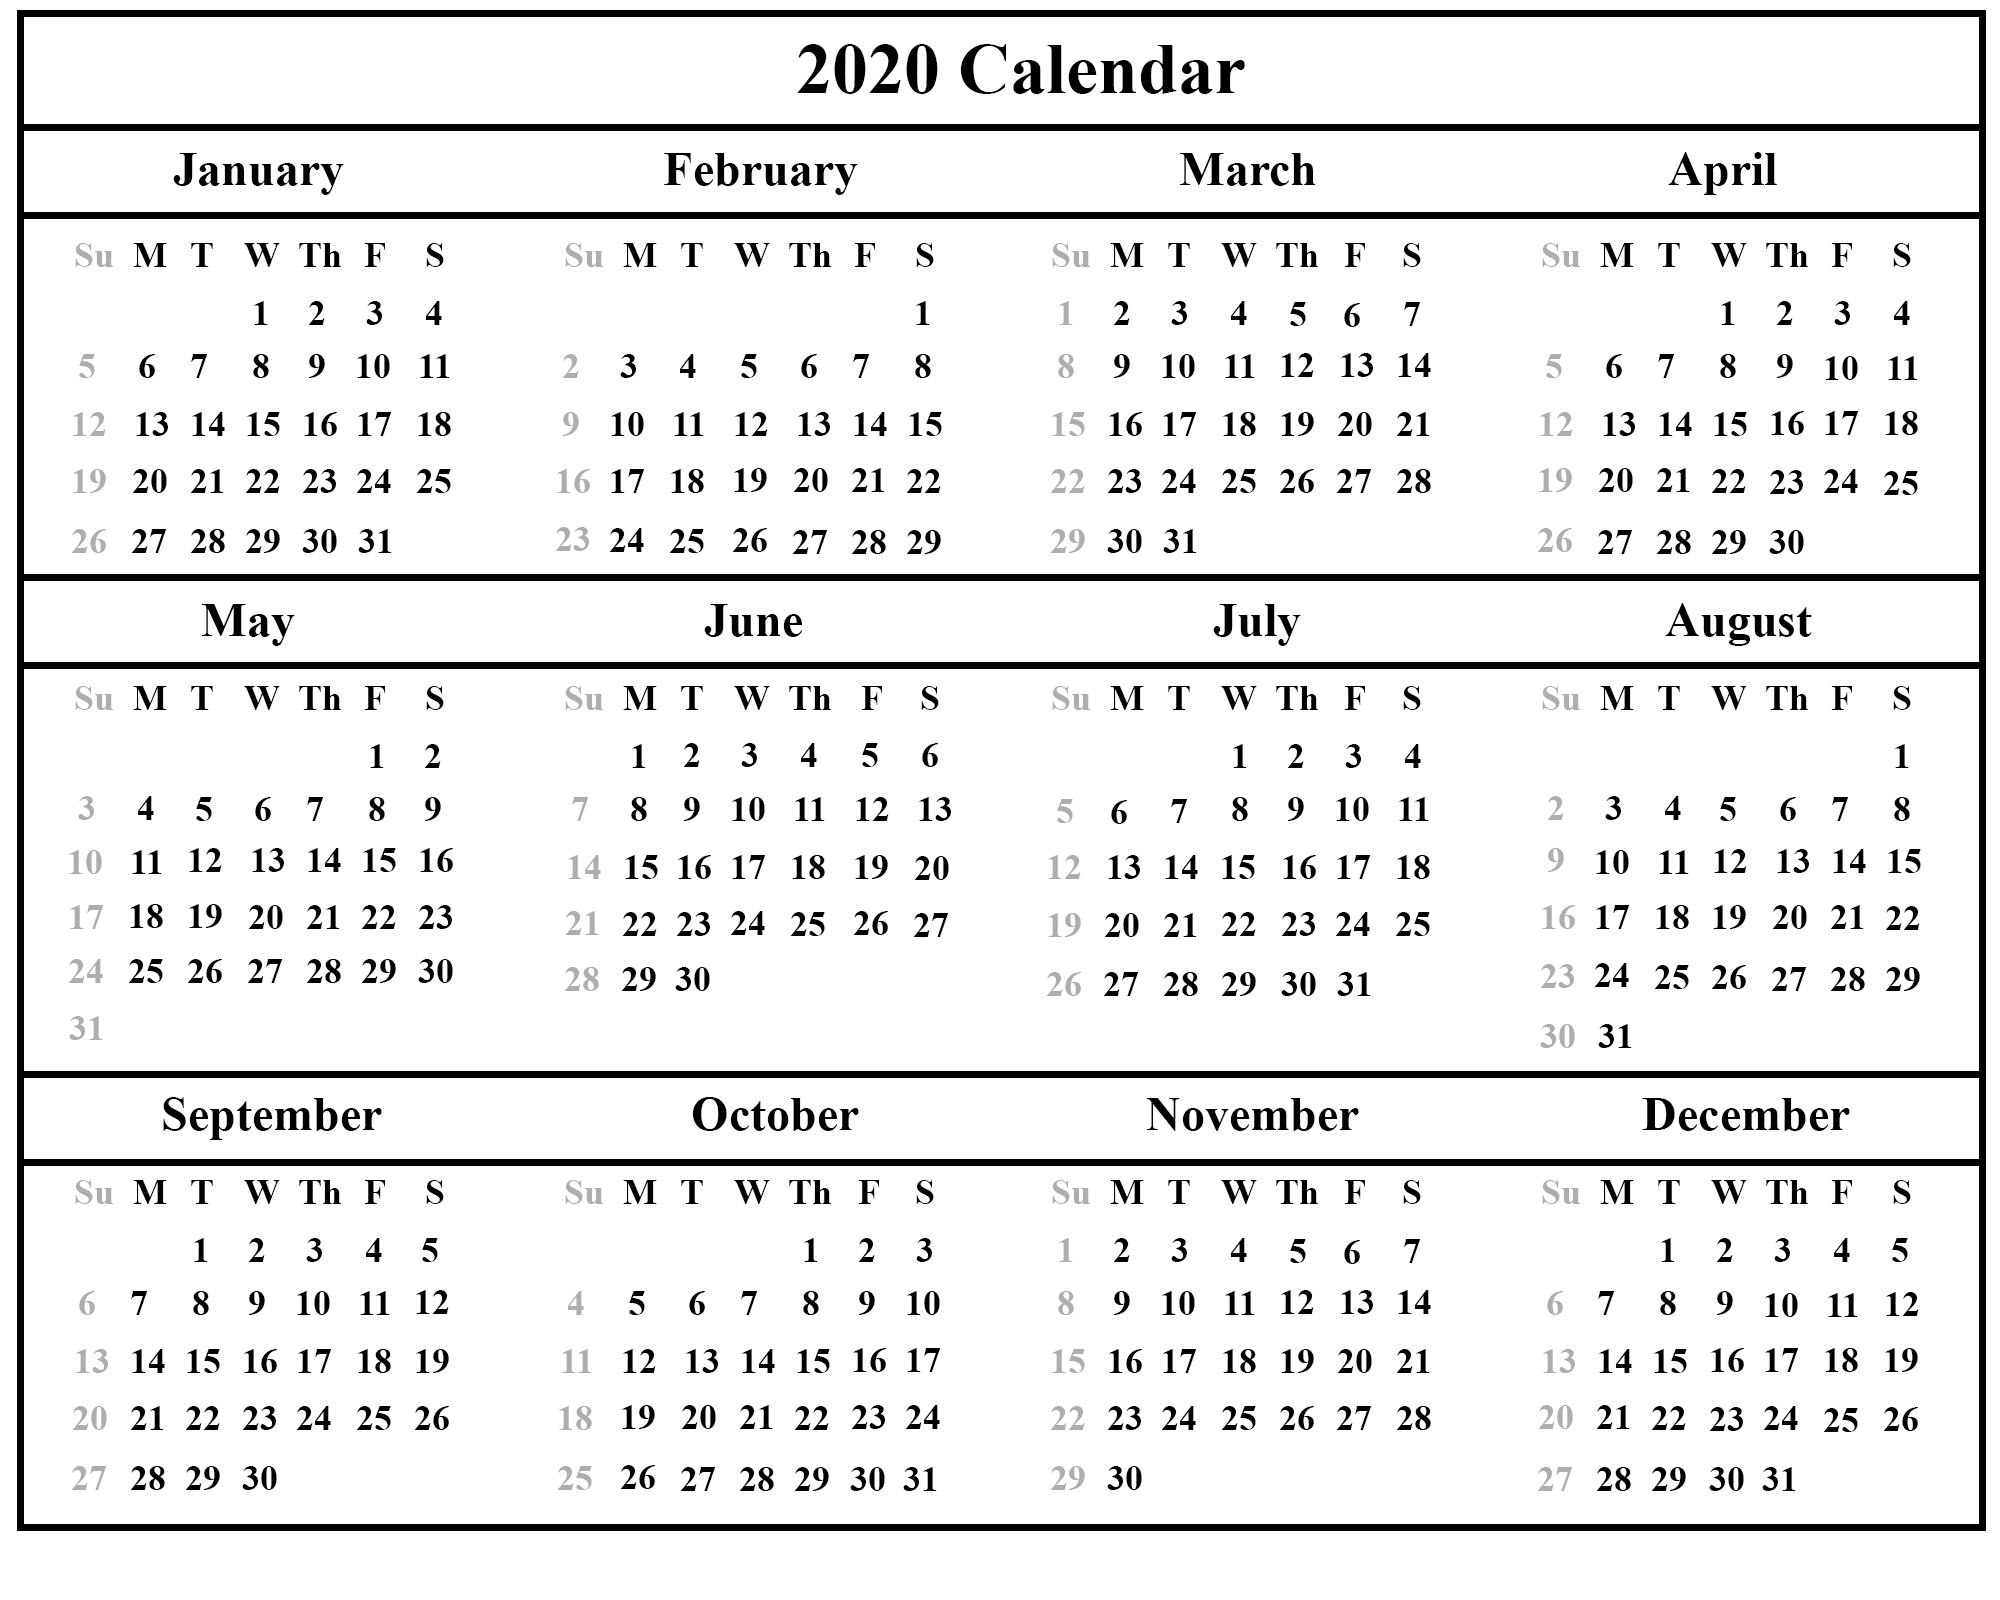 Printable Yearly Calendar 2020 Template With Holidays [Pdf-January 2020 Calendar With Holidays South Africa